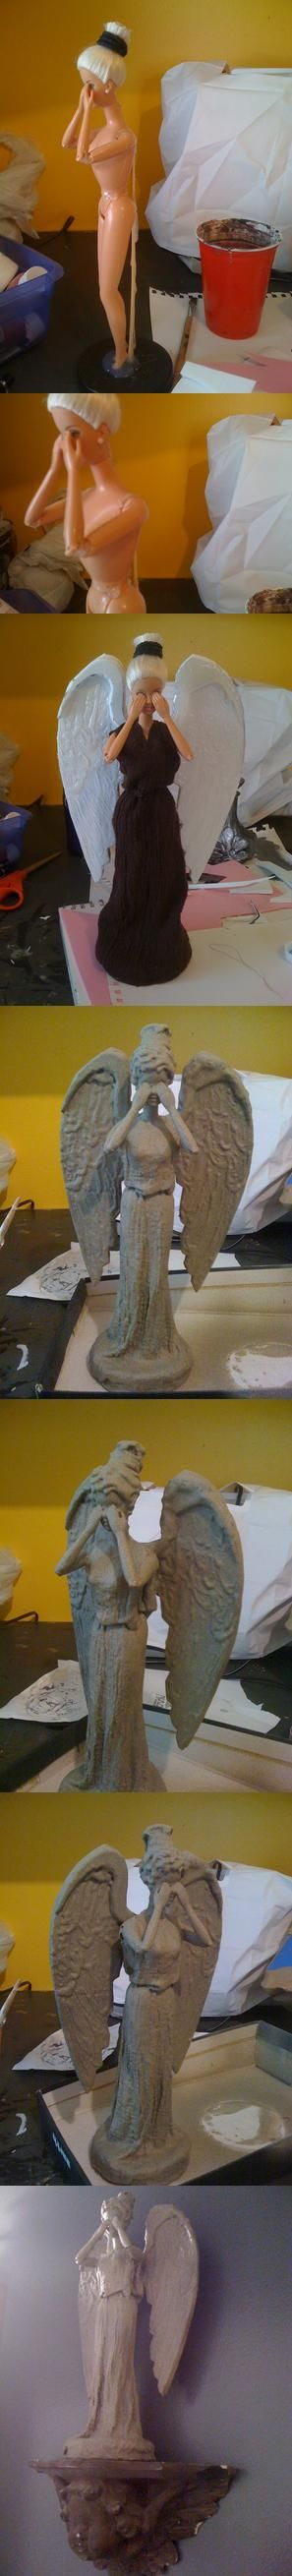 How to Make a Weeping Angel: